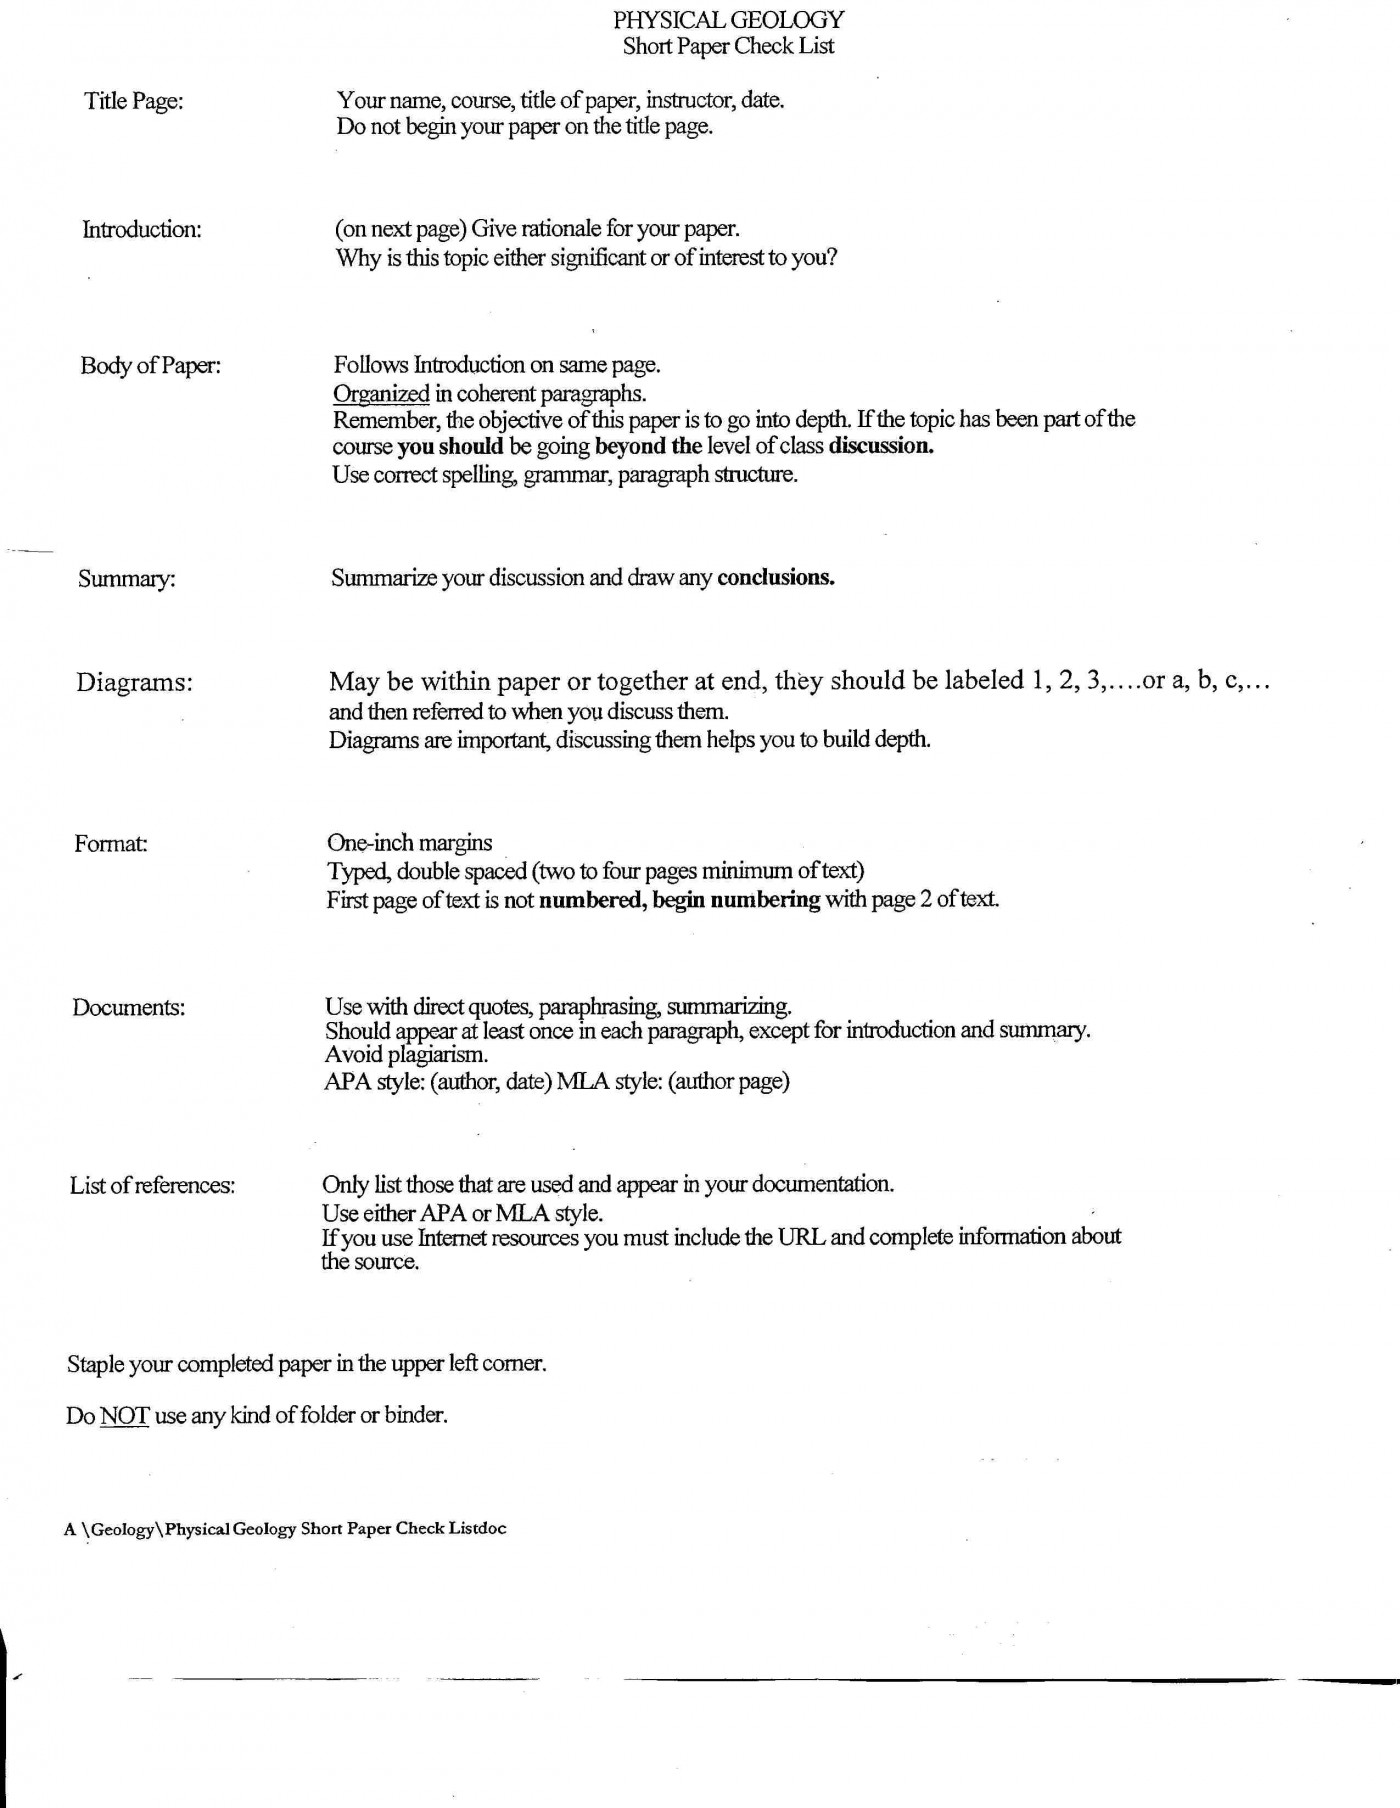 018 Topics In Research Paper Short Checklist Magnificent About Education English Psychology 1400